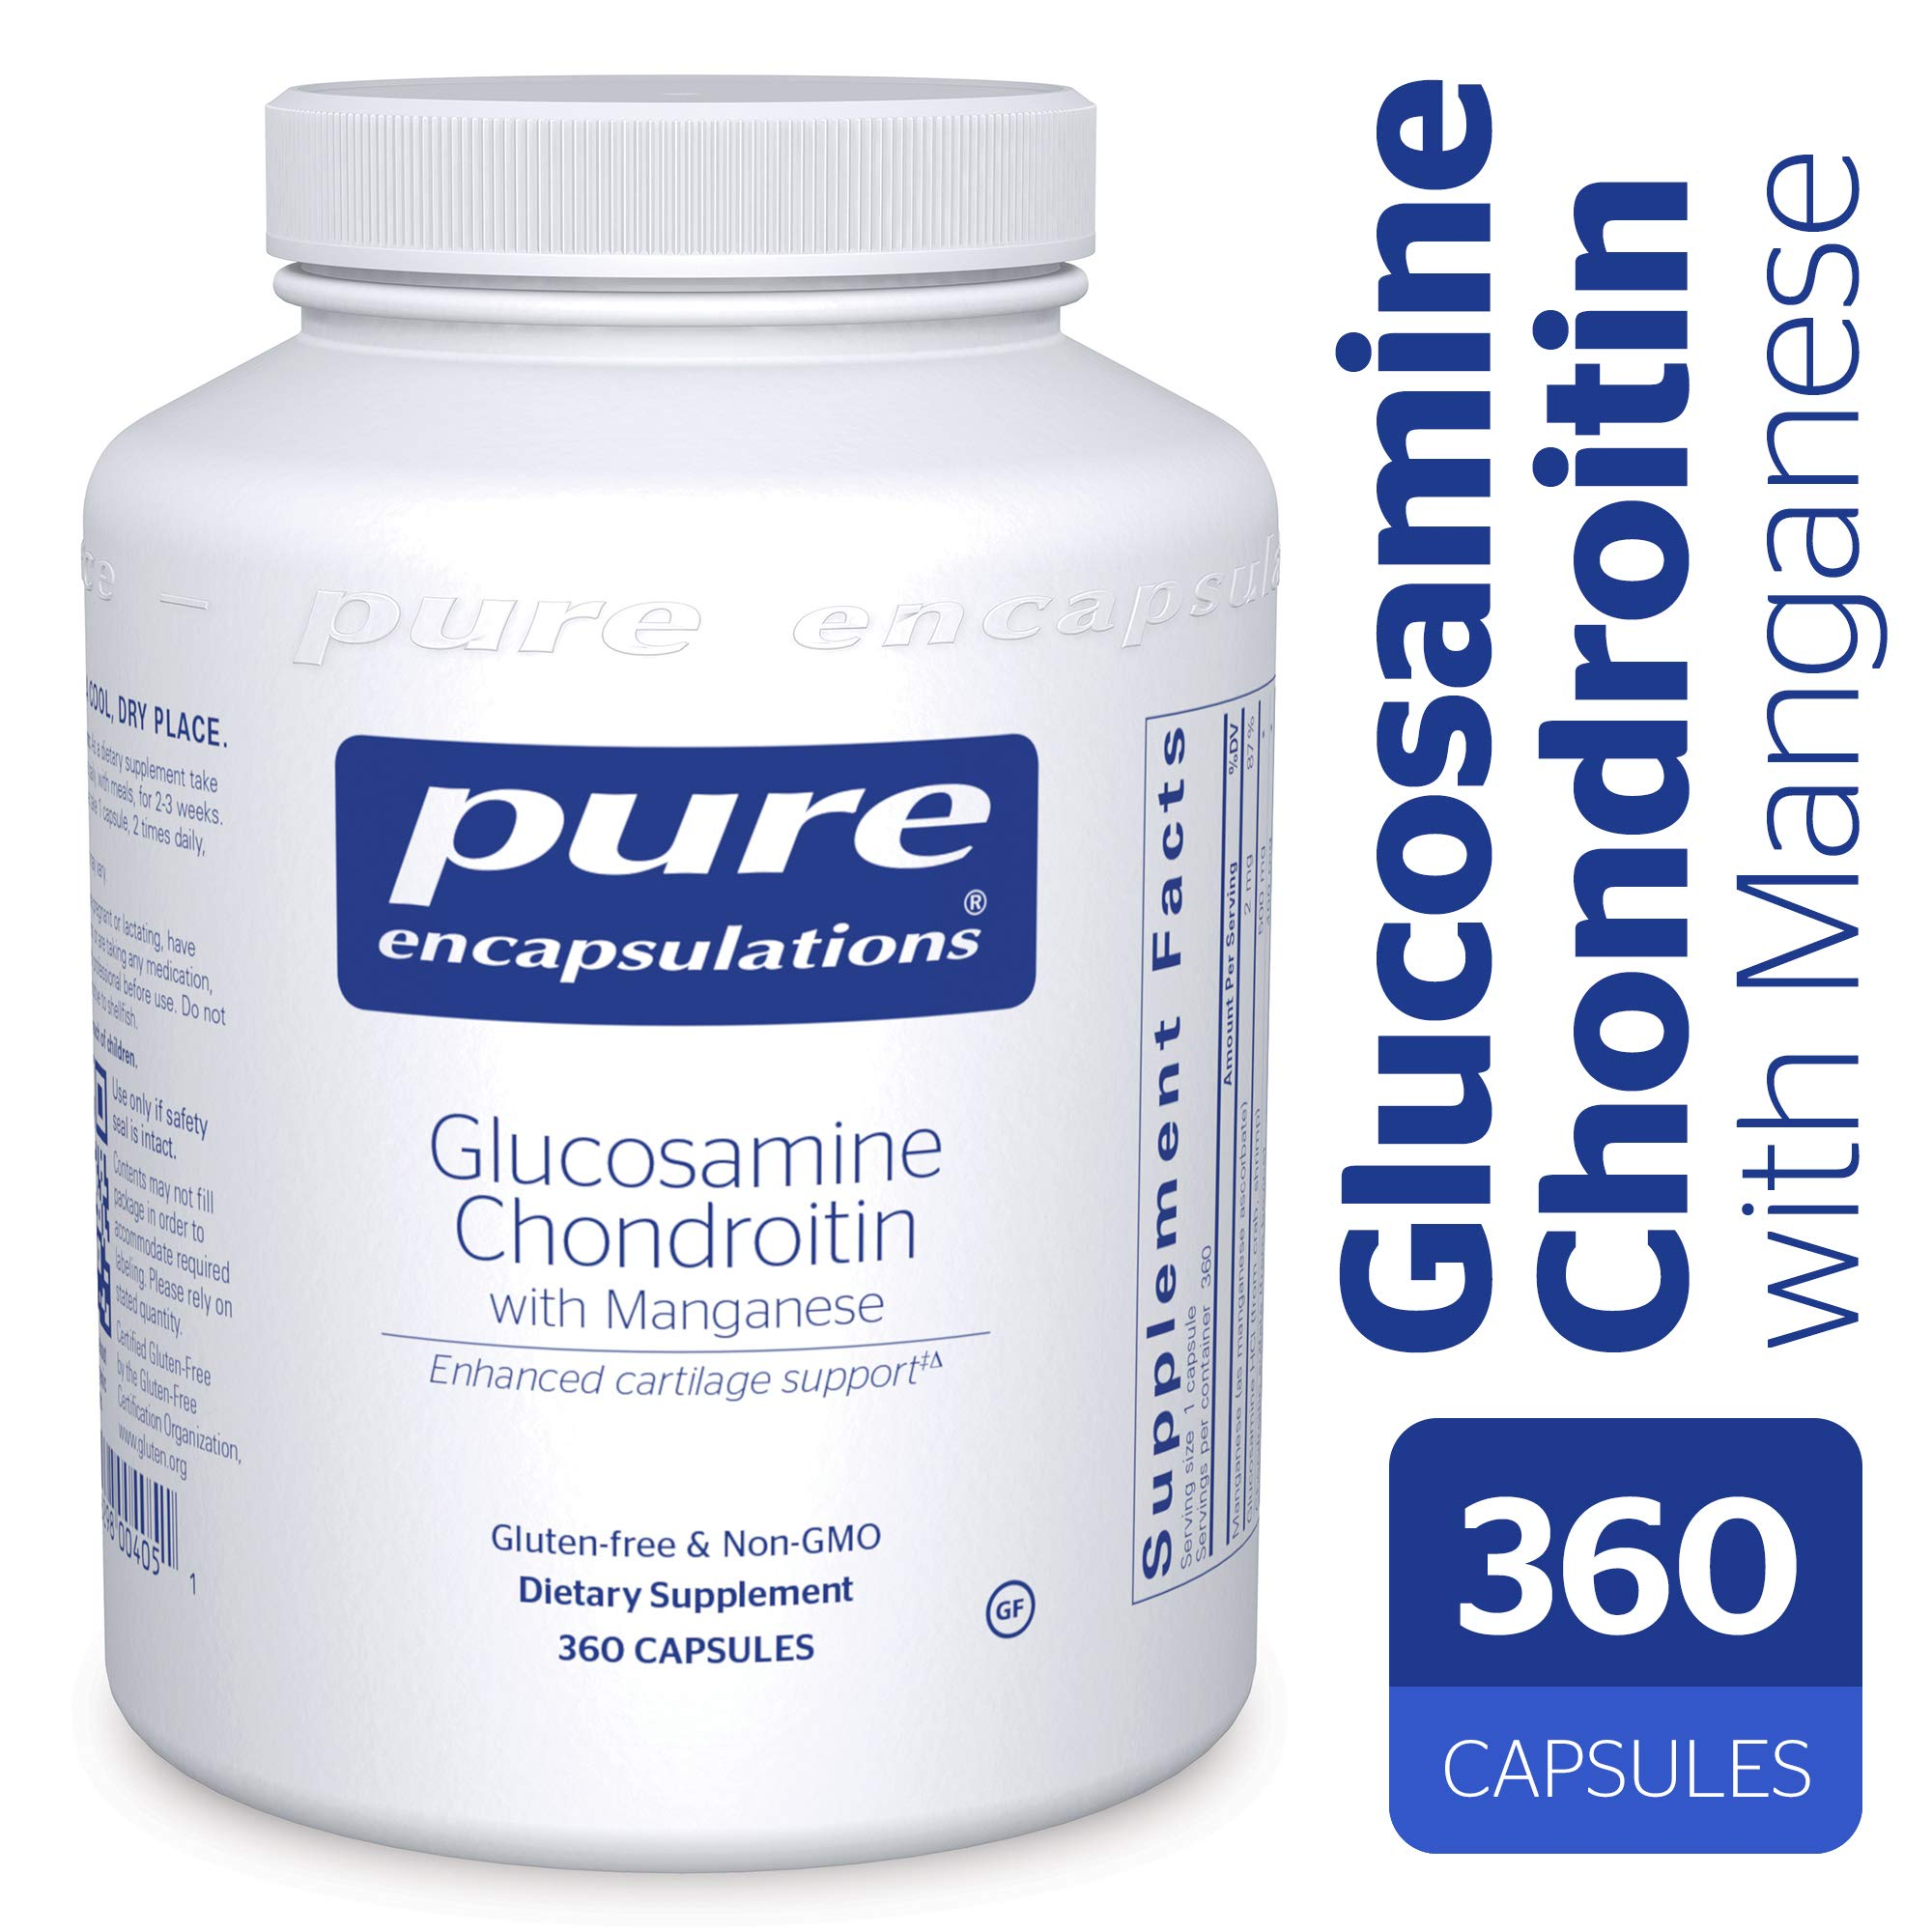 Pure Encapsulations - Glucosamine + Chondroitin with Manganese - Enhanced Cartilage Synthesis and Antioxidant Support* - 360 Capsules